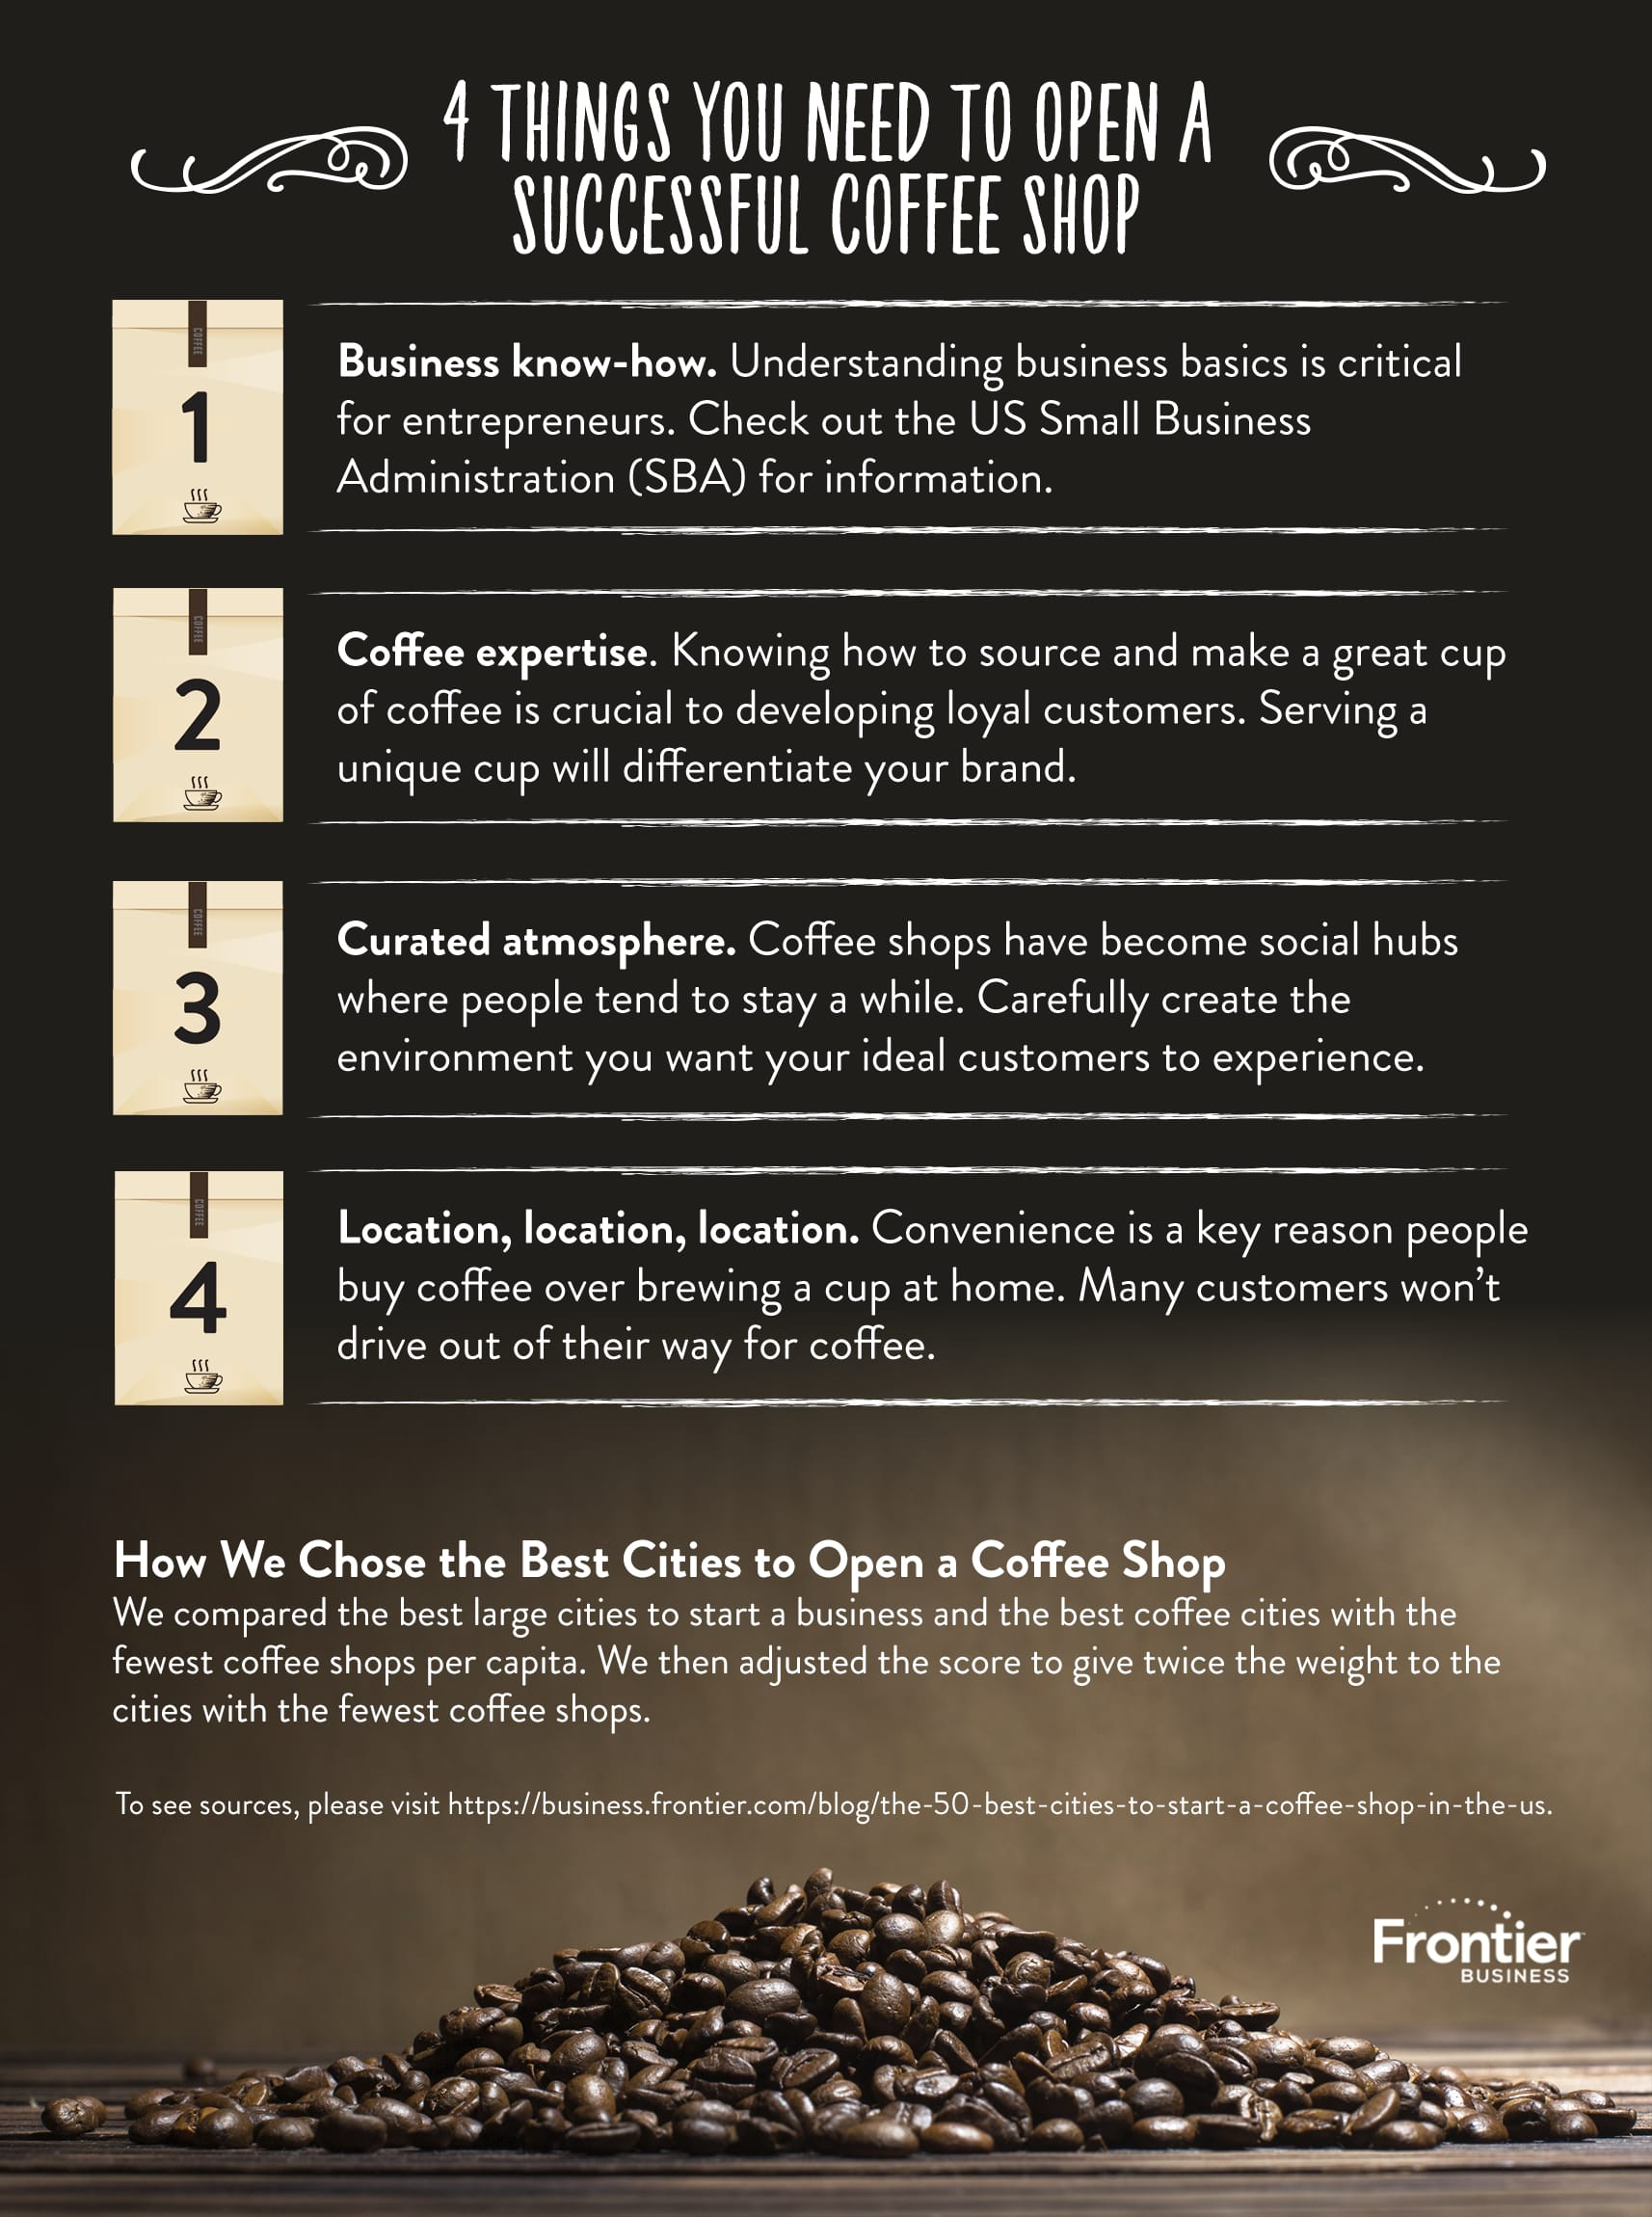 4 Tips for Opening a Successful Coffee Shop